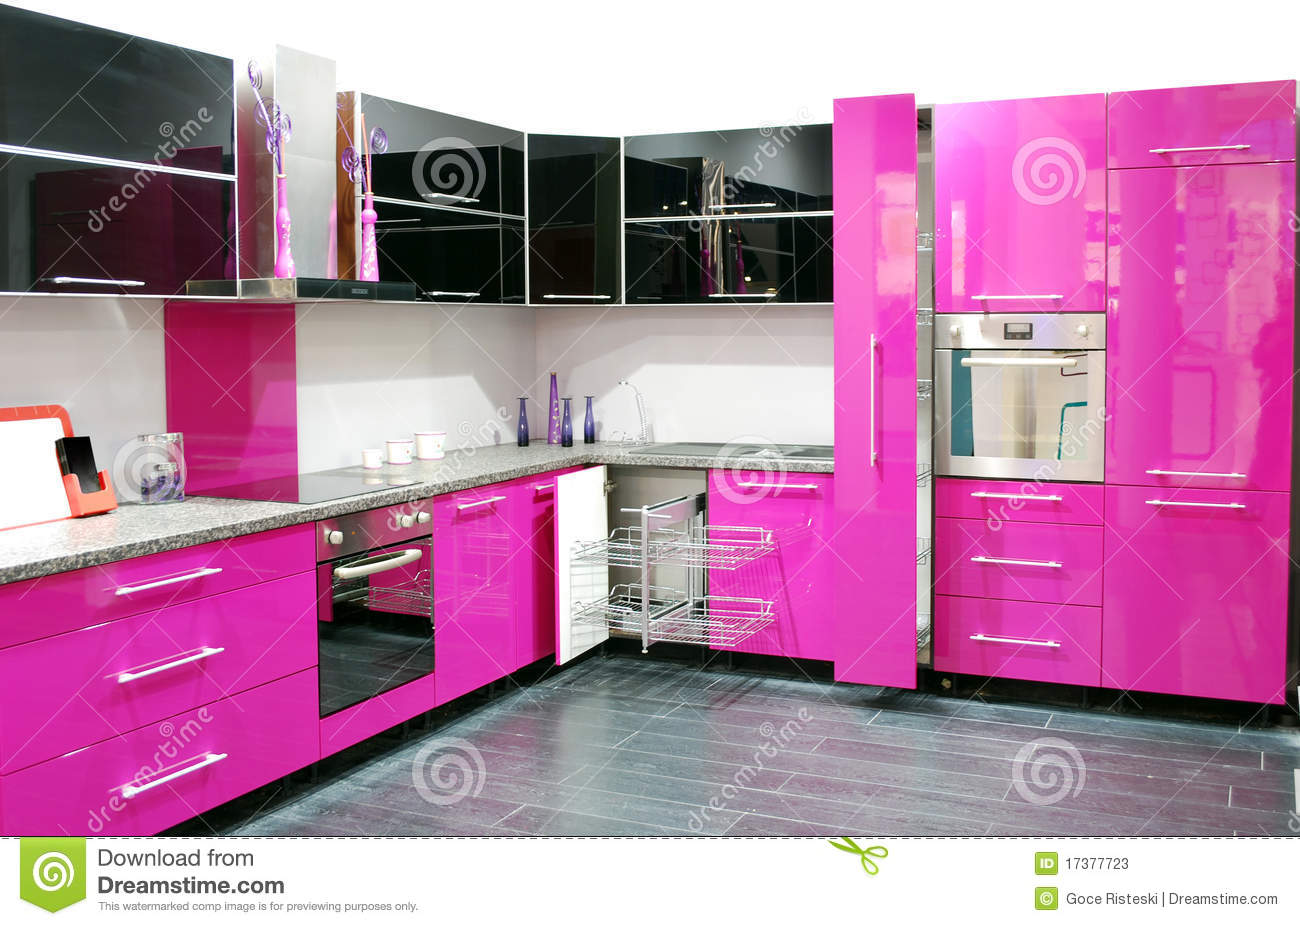 Pink Kitchen Stock Photos  Image 17377723